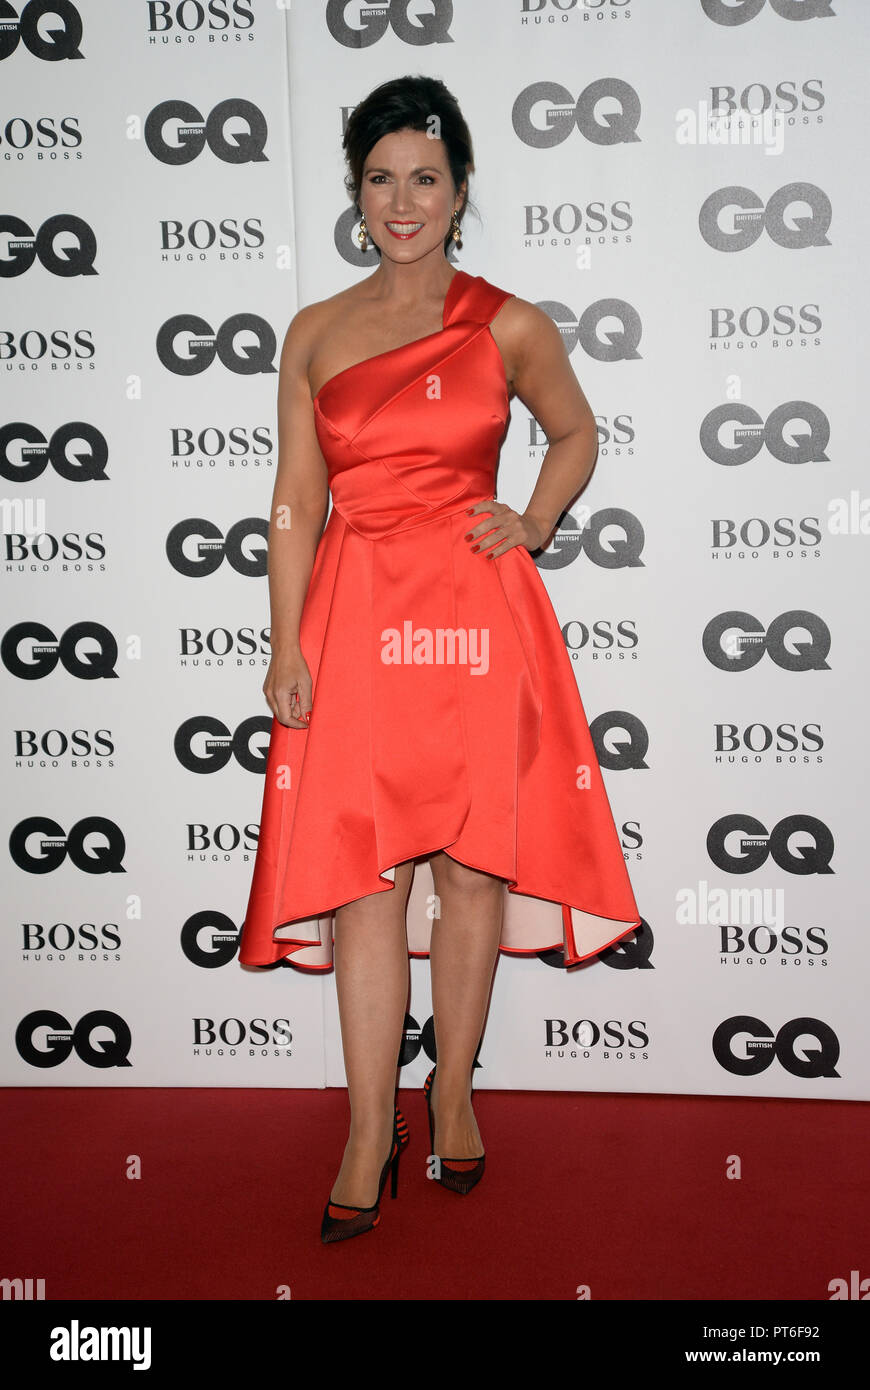 GQ Men Of The Year Awards  Featuring: Susanna Reid Where: London, United Kingdom When: 05 Sep 2018 Credit: Tony Oudot/WENN - Stock Image